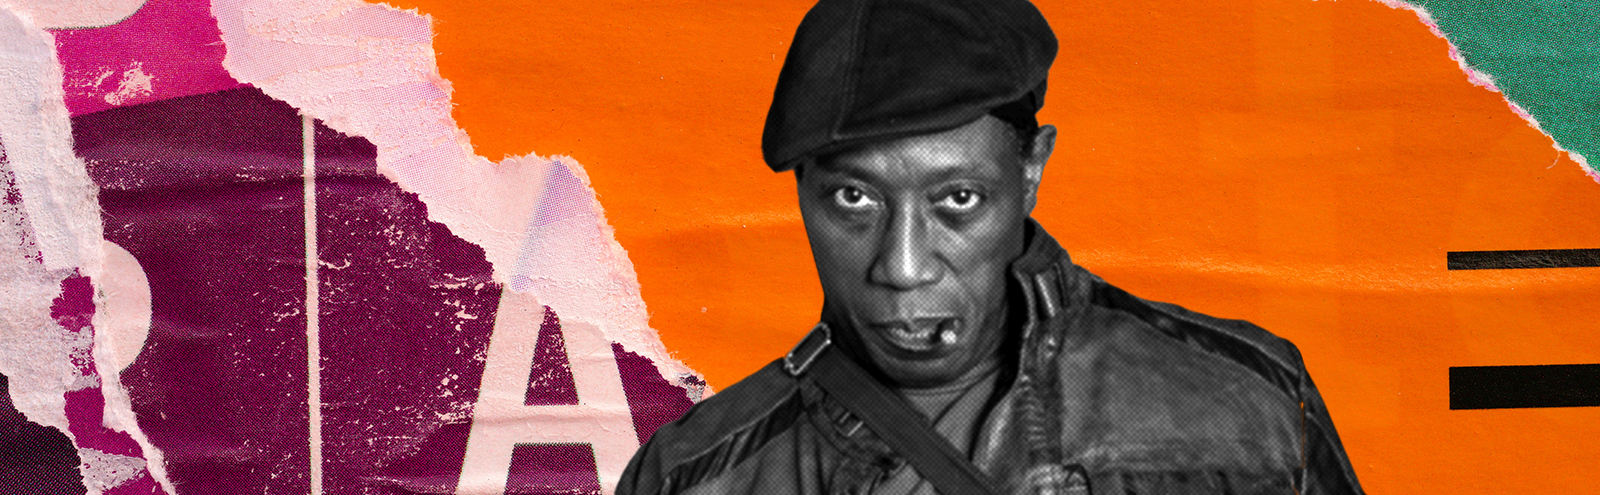 Wesley Snipes Is Back In 'Coming 2 America' And He's About To Pop, Baby!